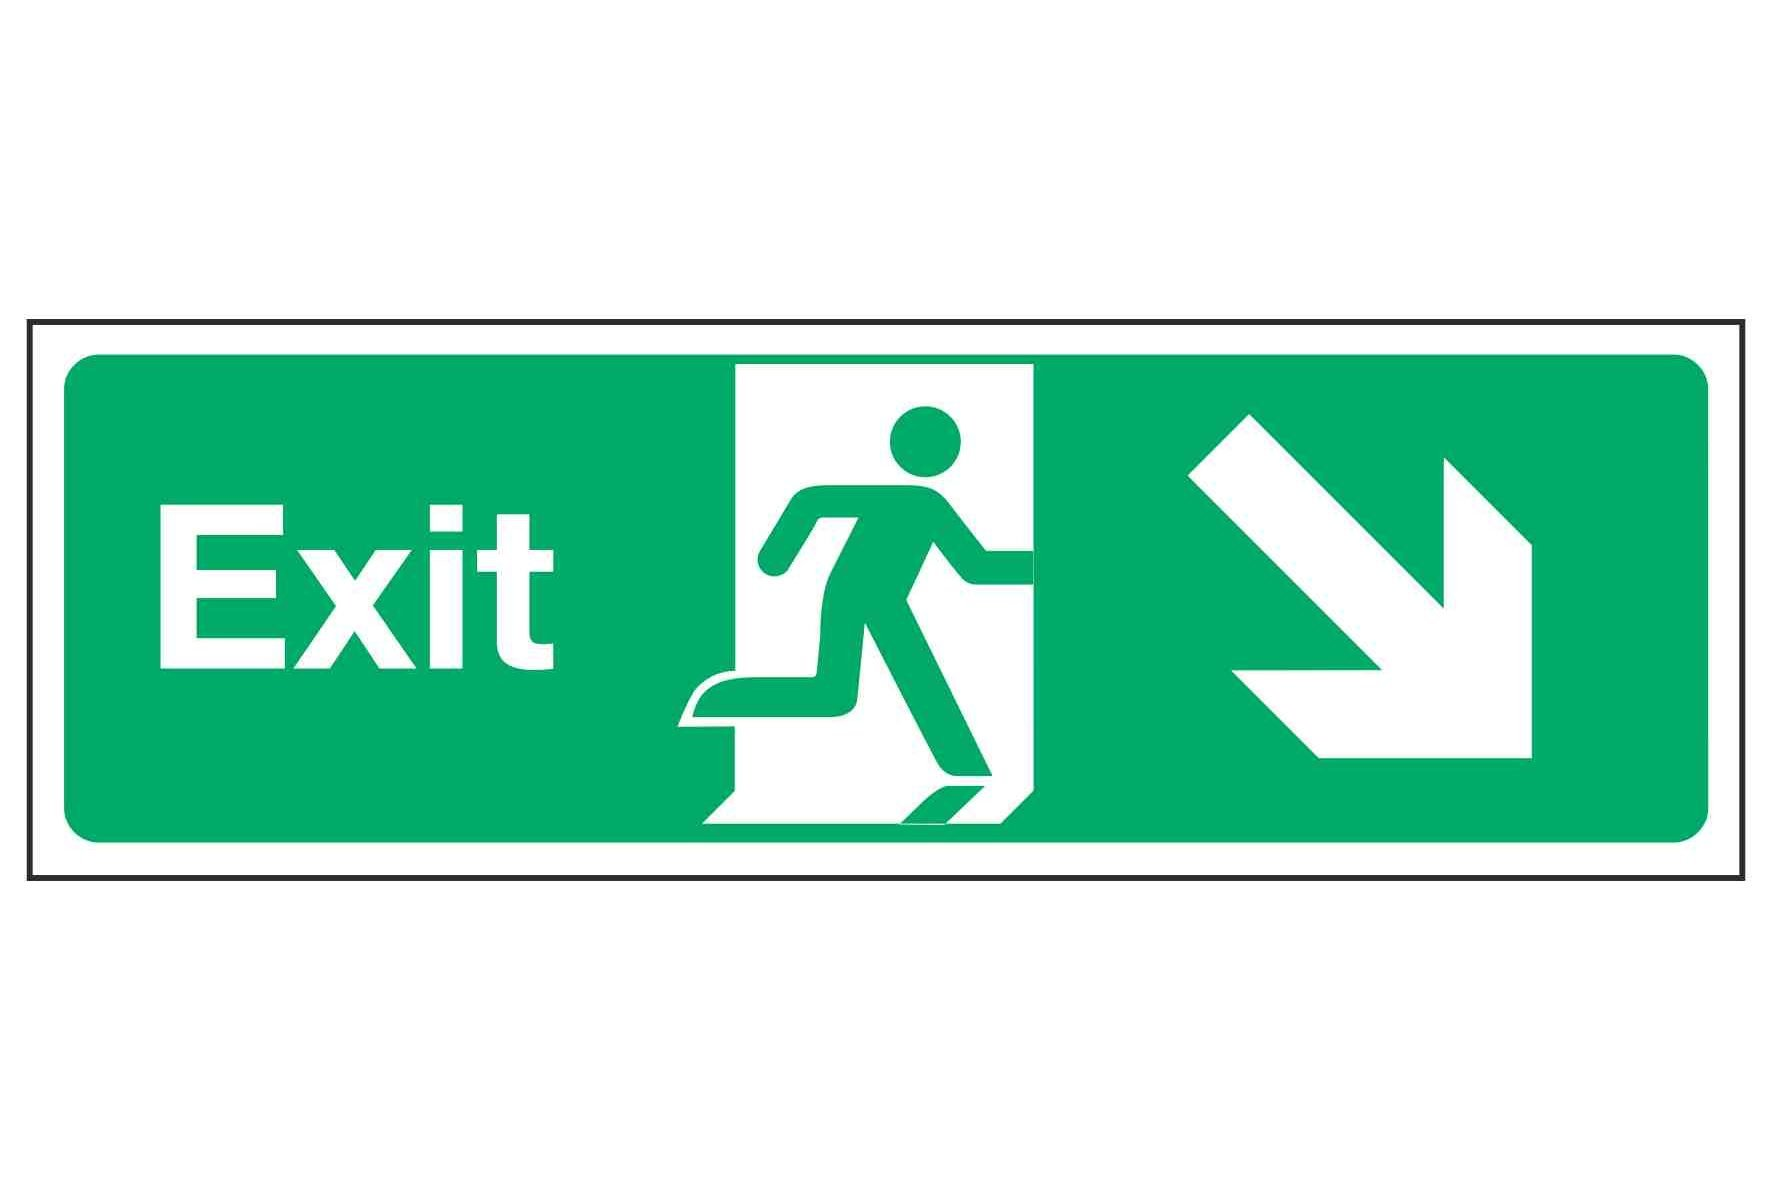 Exit / Arrow Down Right